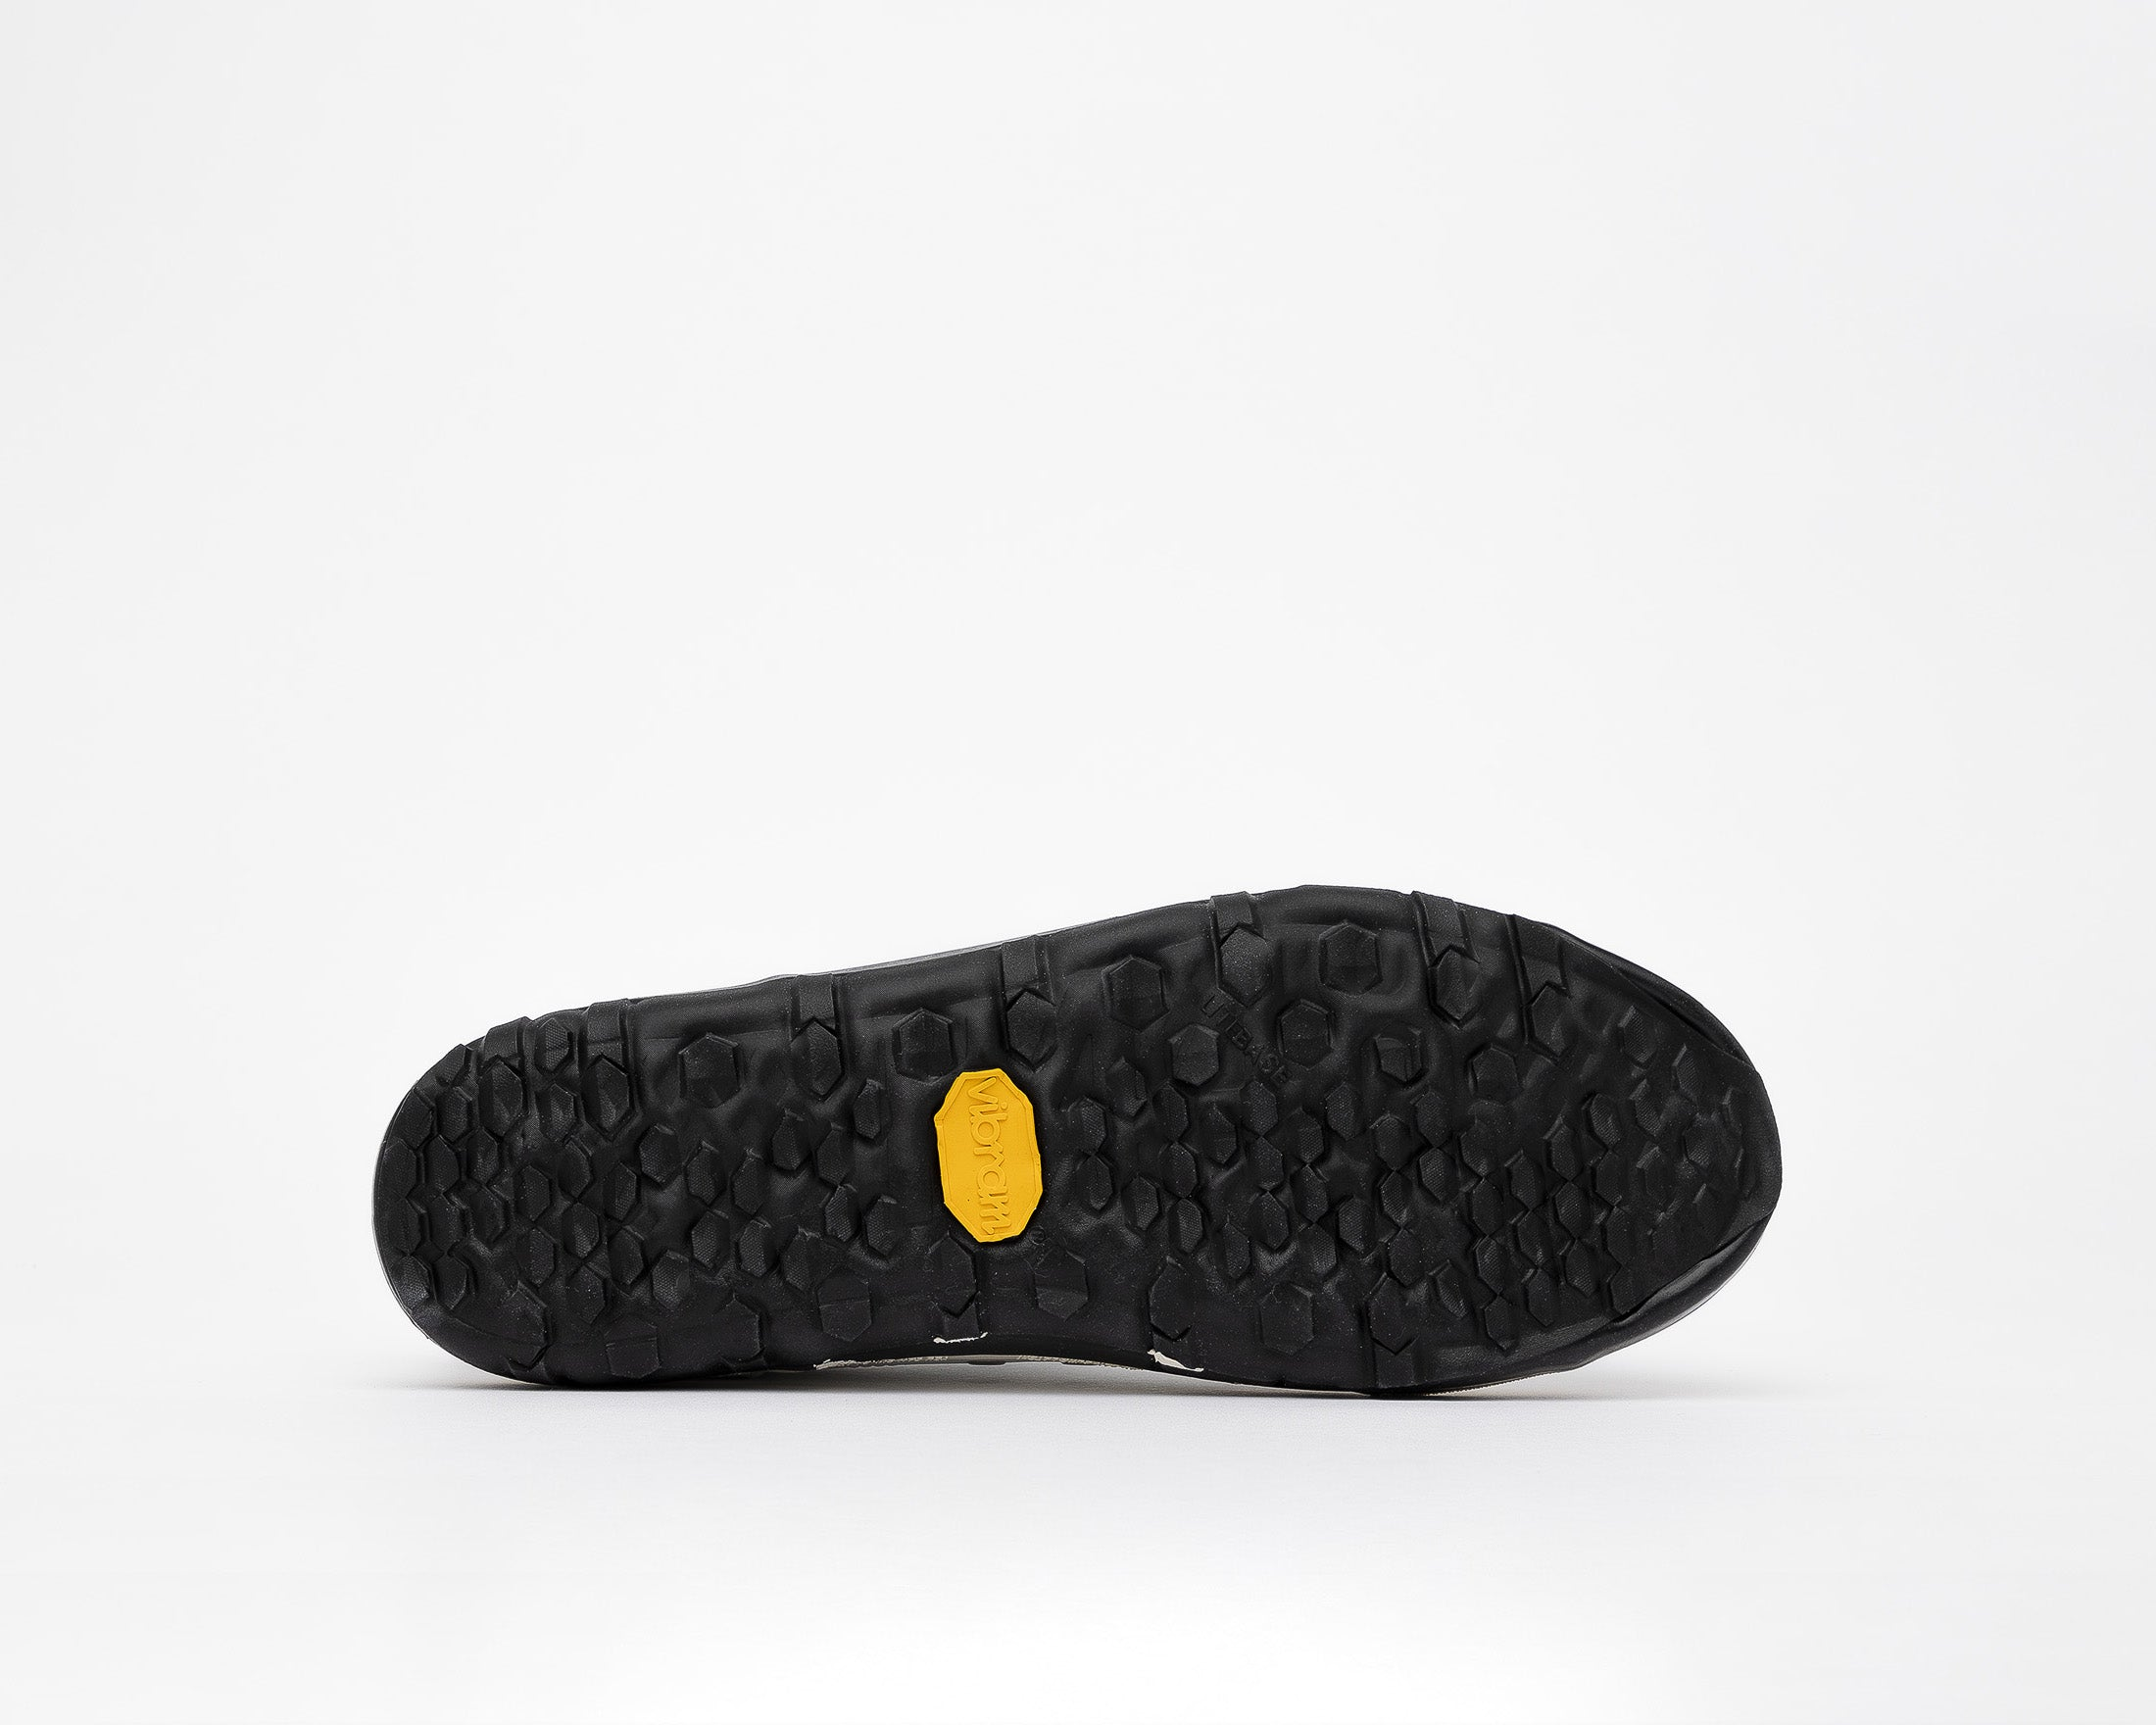 Y.C.S.L. Vibram Low-Top Sneaker in White/Black - Bottom